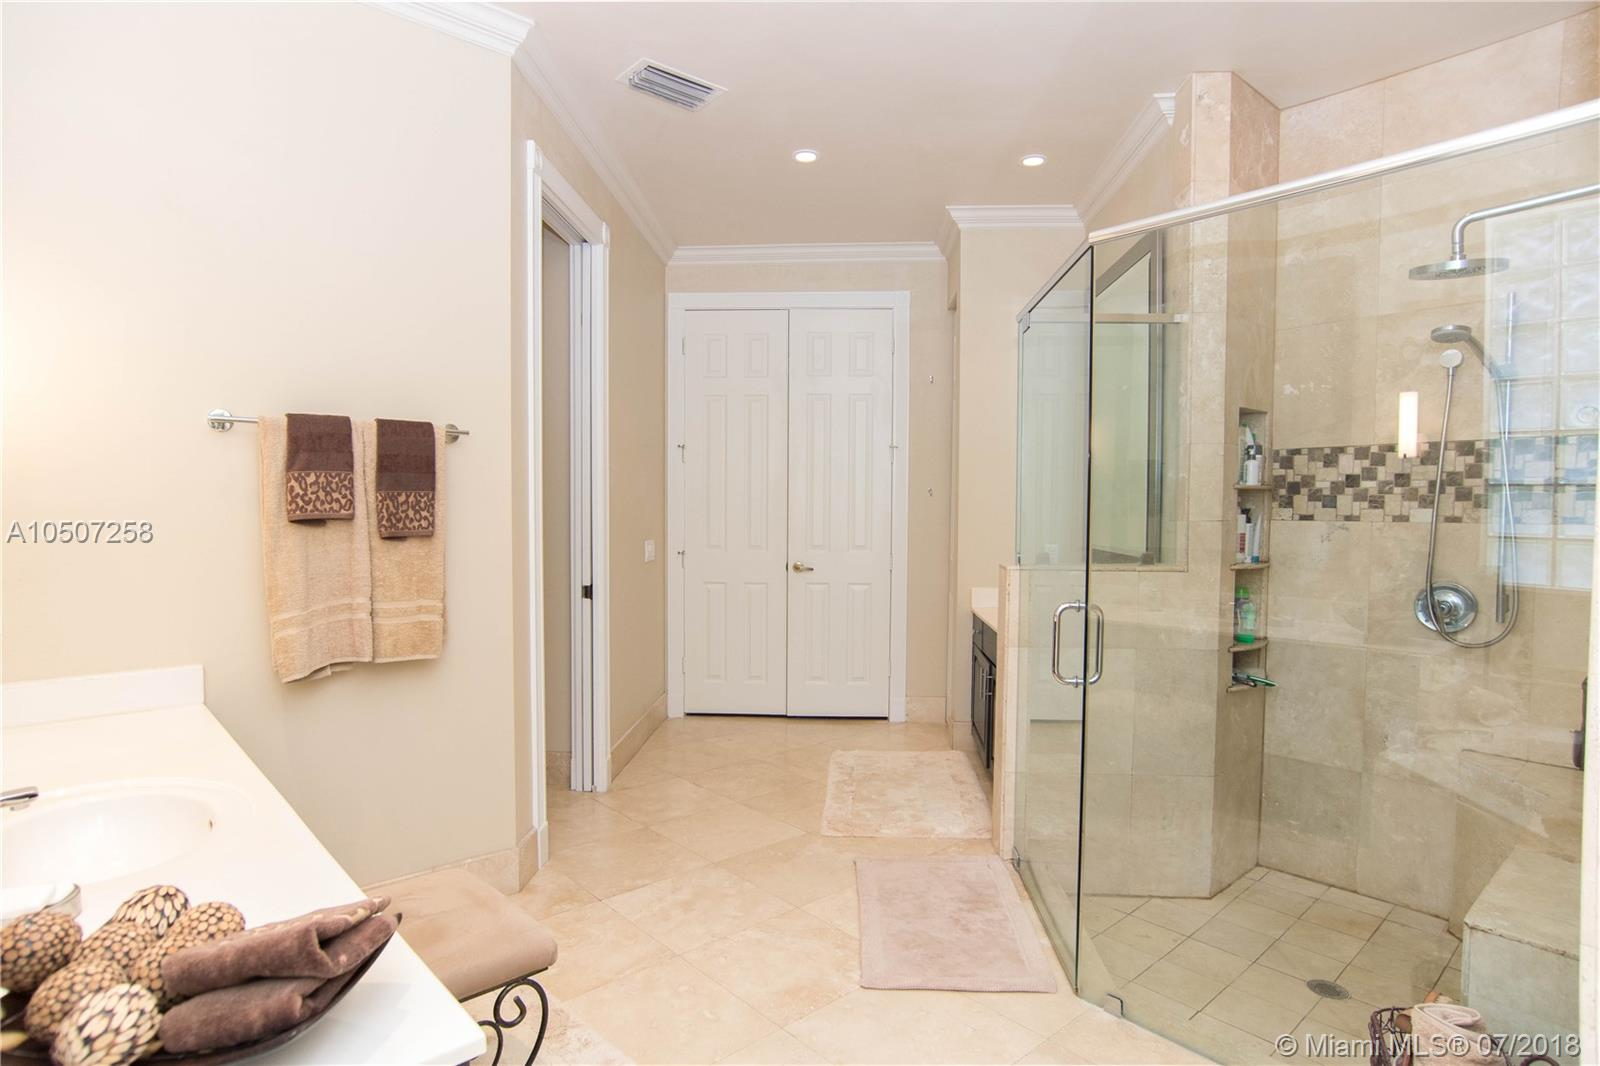 447 Nw 118th Way, Coral Springs FL, 33071